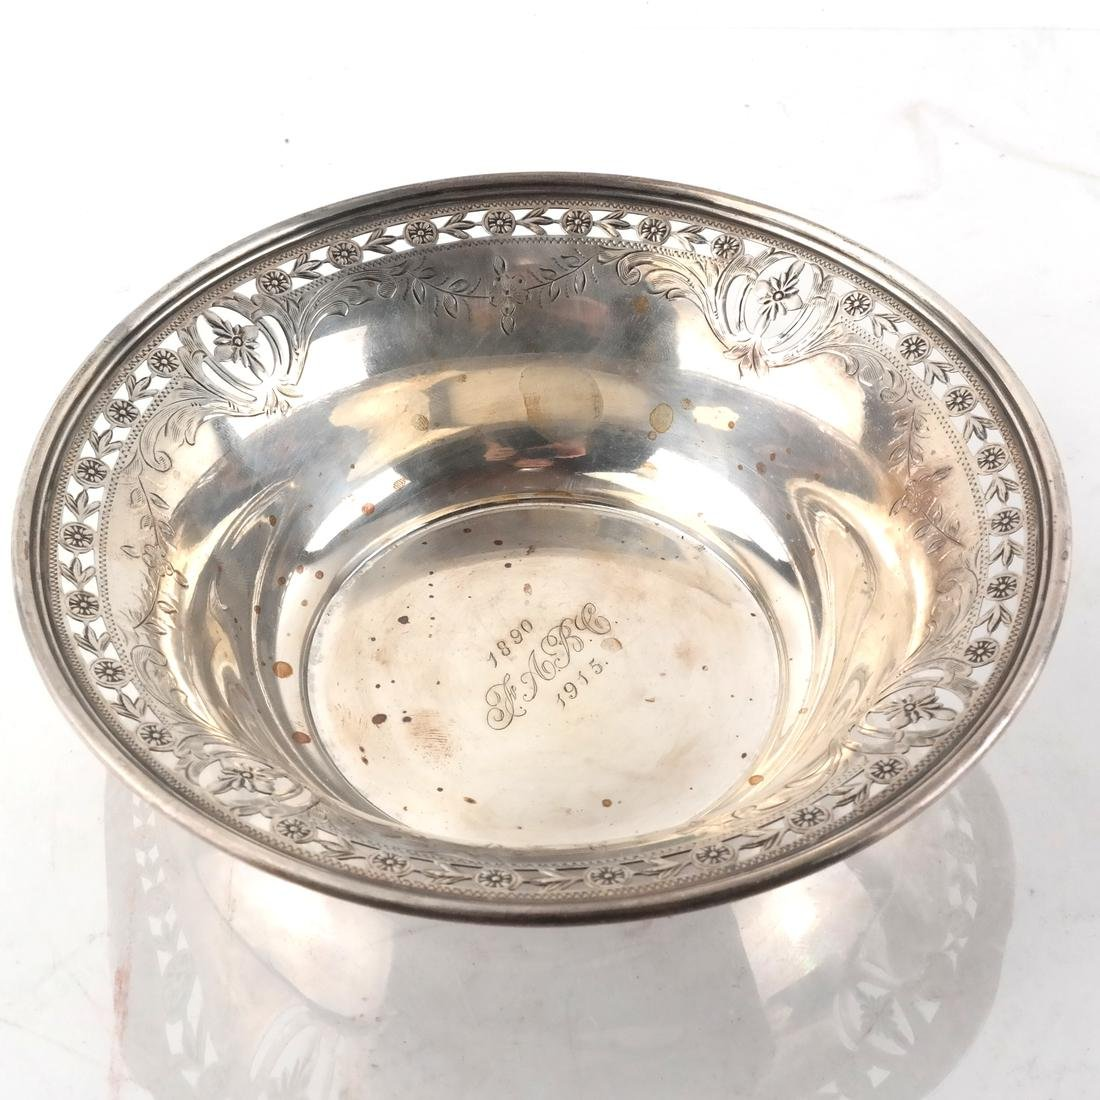 3 Sterling Silver Serving Dishes/Bowls - 4